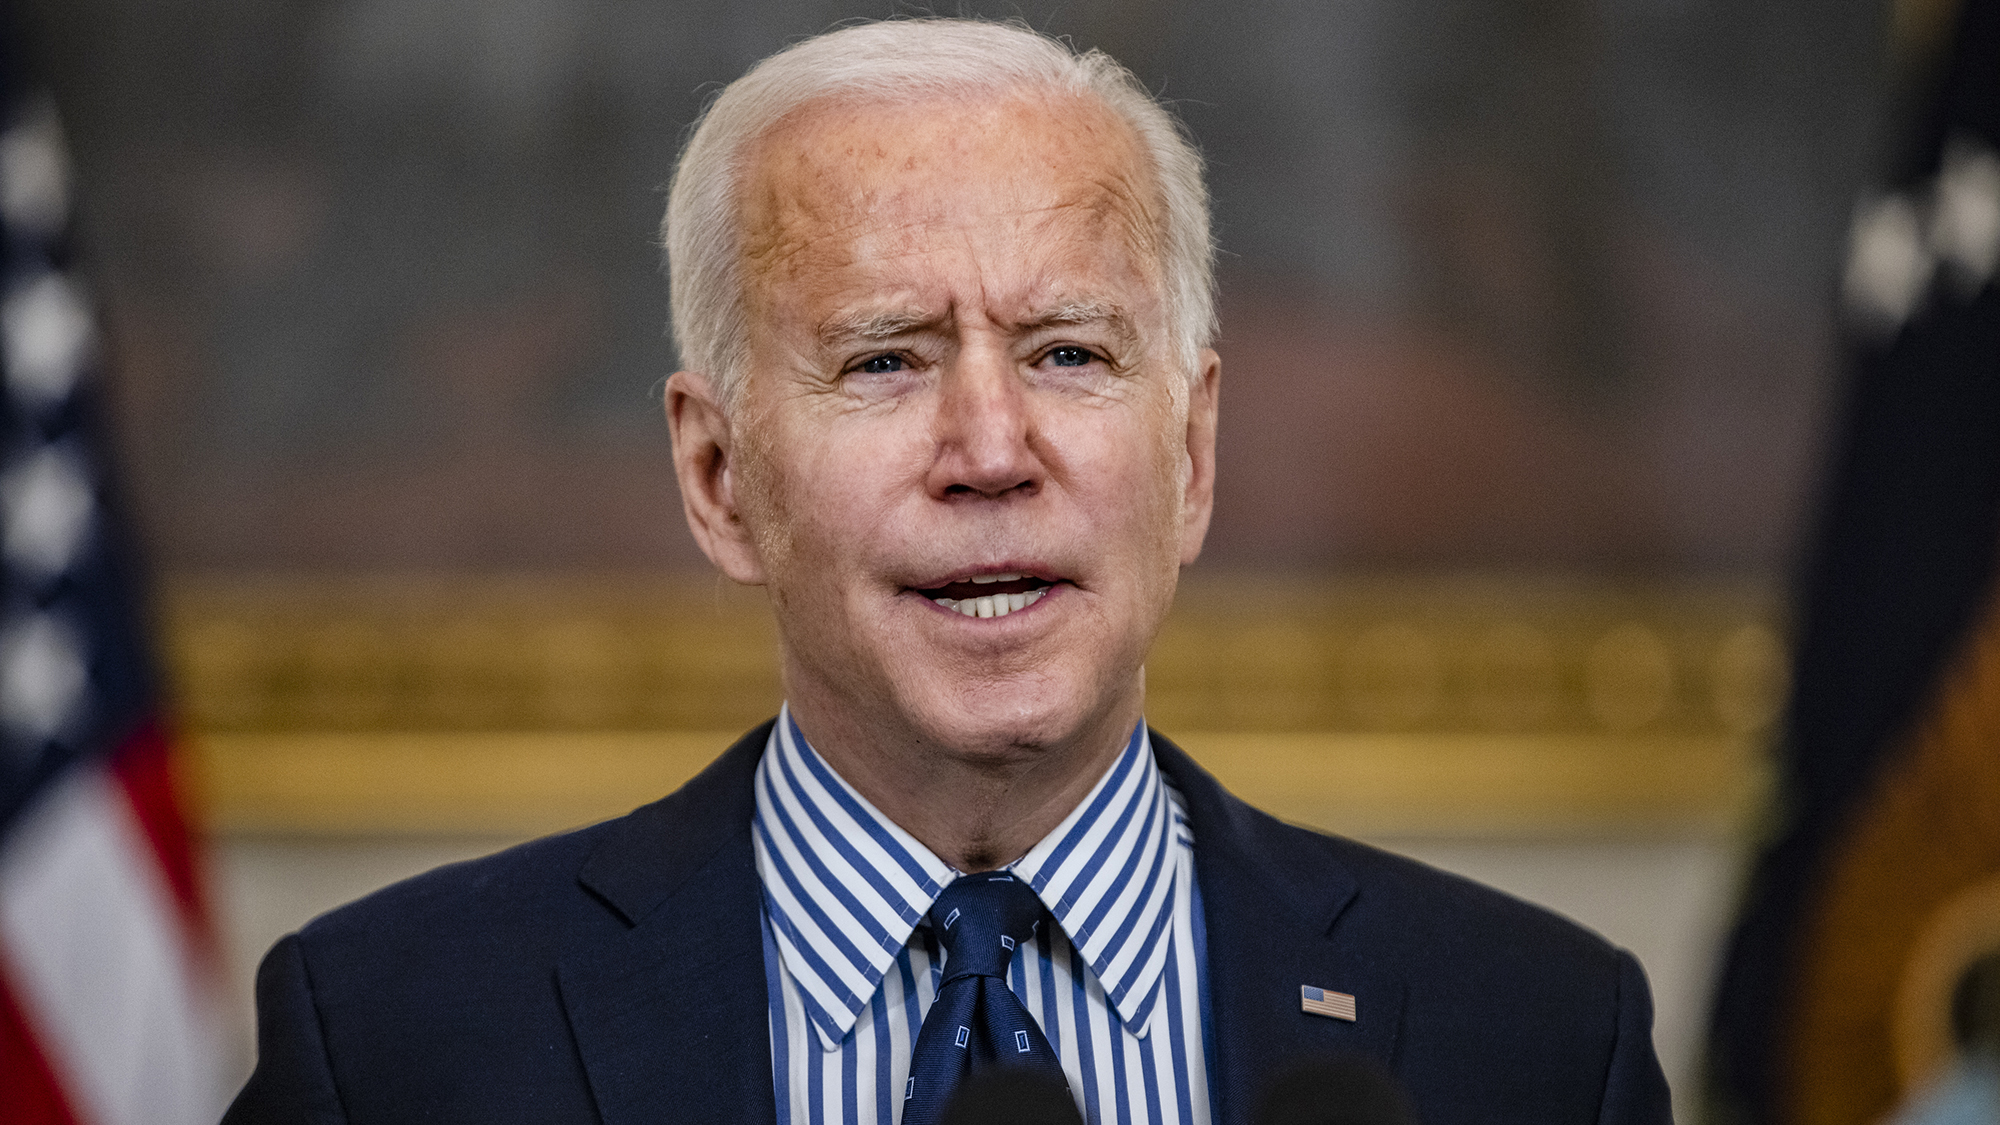 Biden opposes gutting filibuster despite tough path for some legislative priorities in Senate